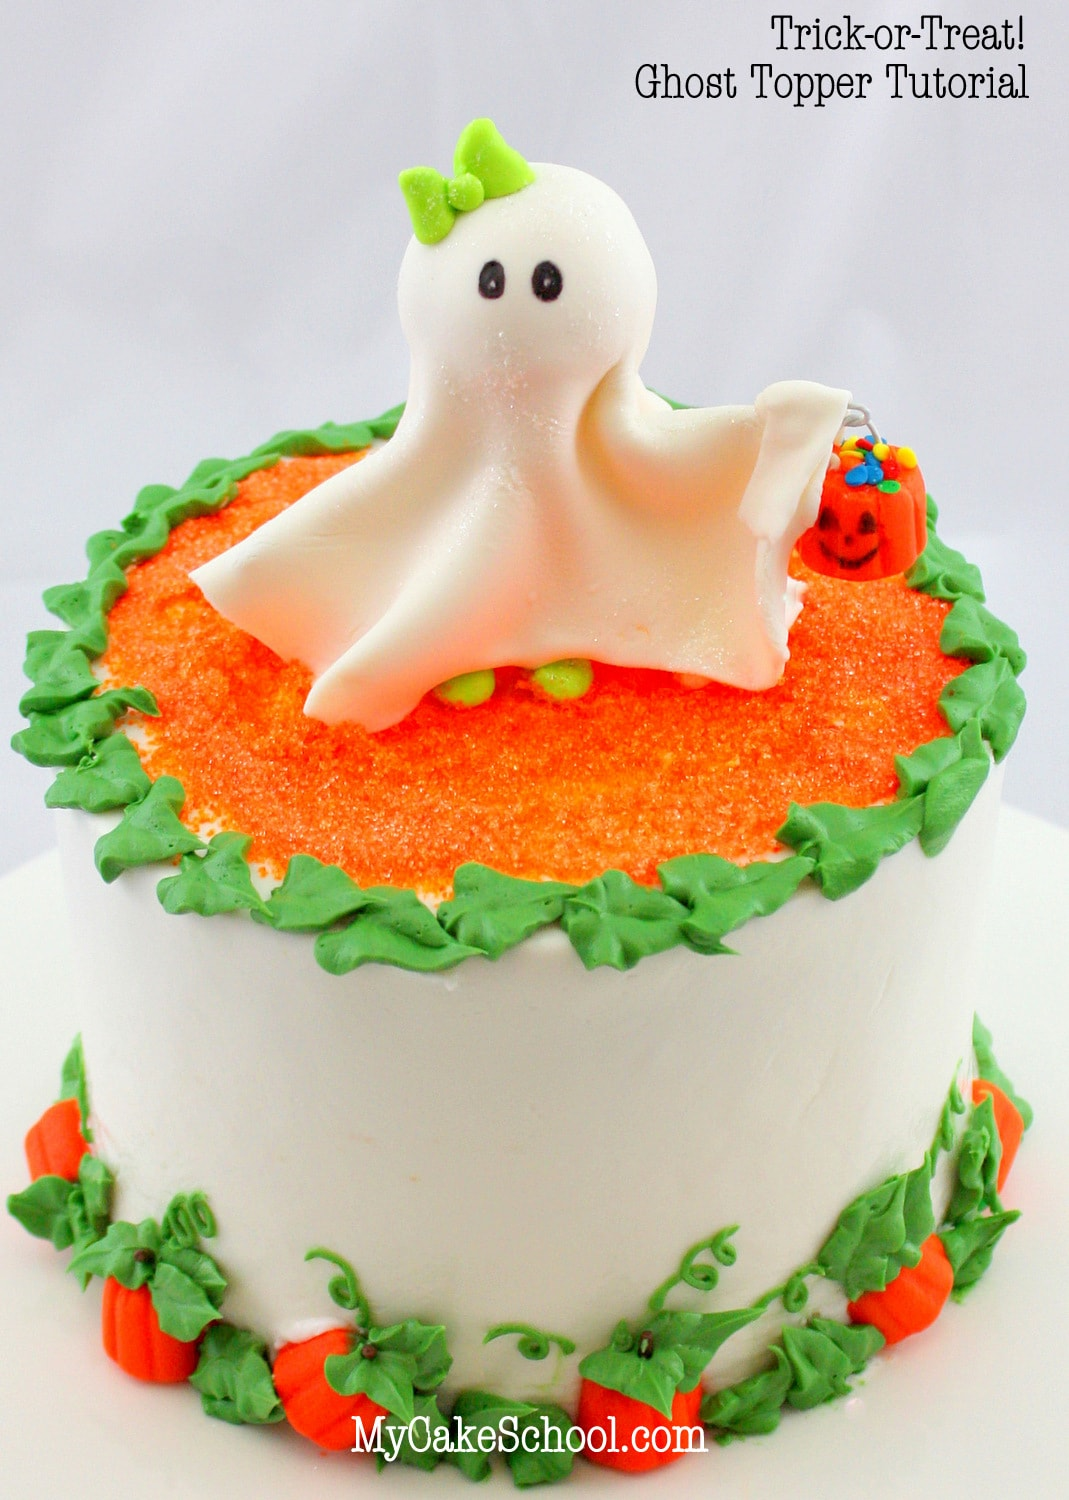 Adorable Ghost Topper and Pumpkin Patch Border! Free Cake Tutorial by MyCakeSchool.com